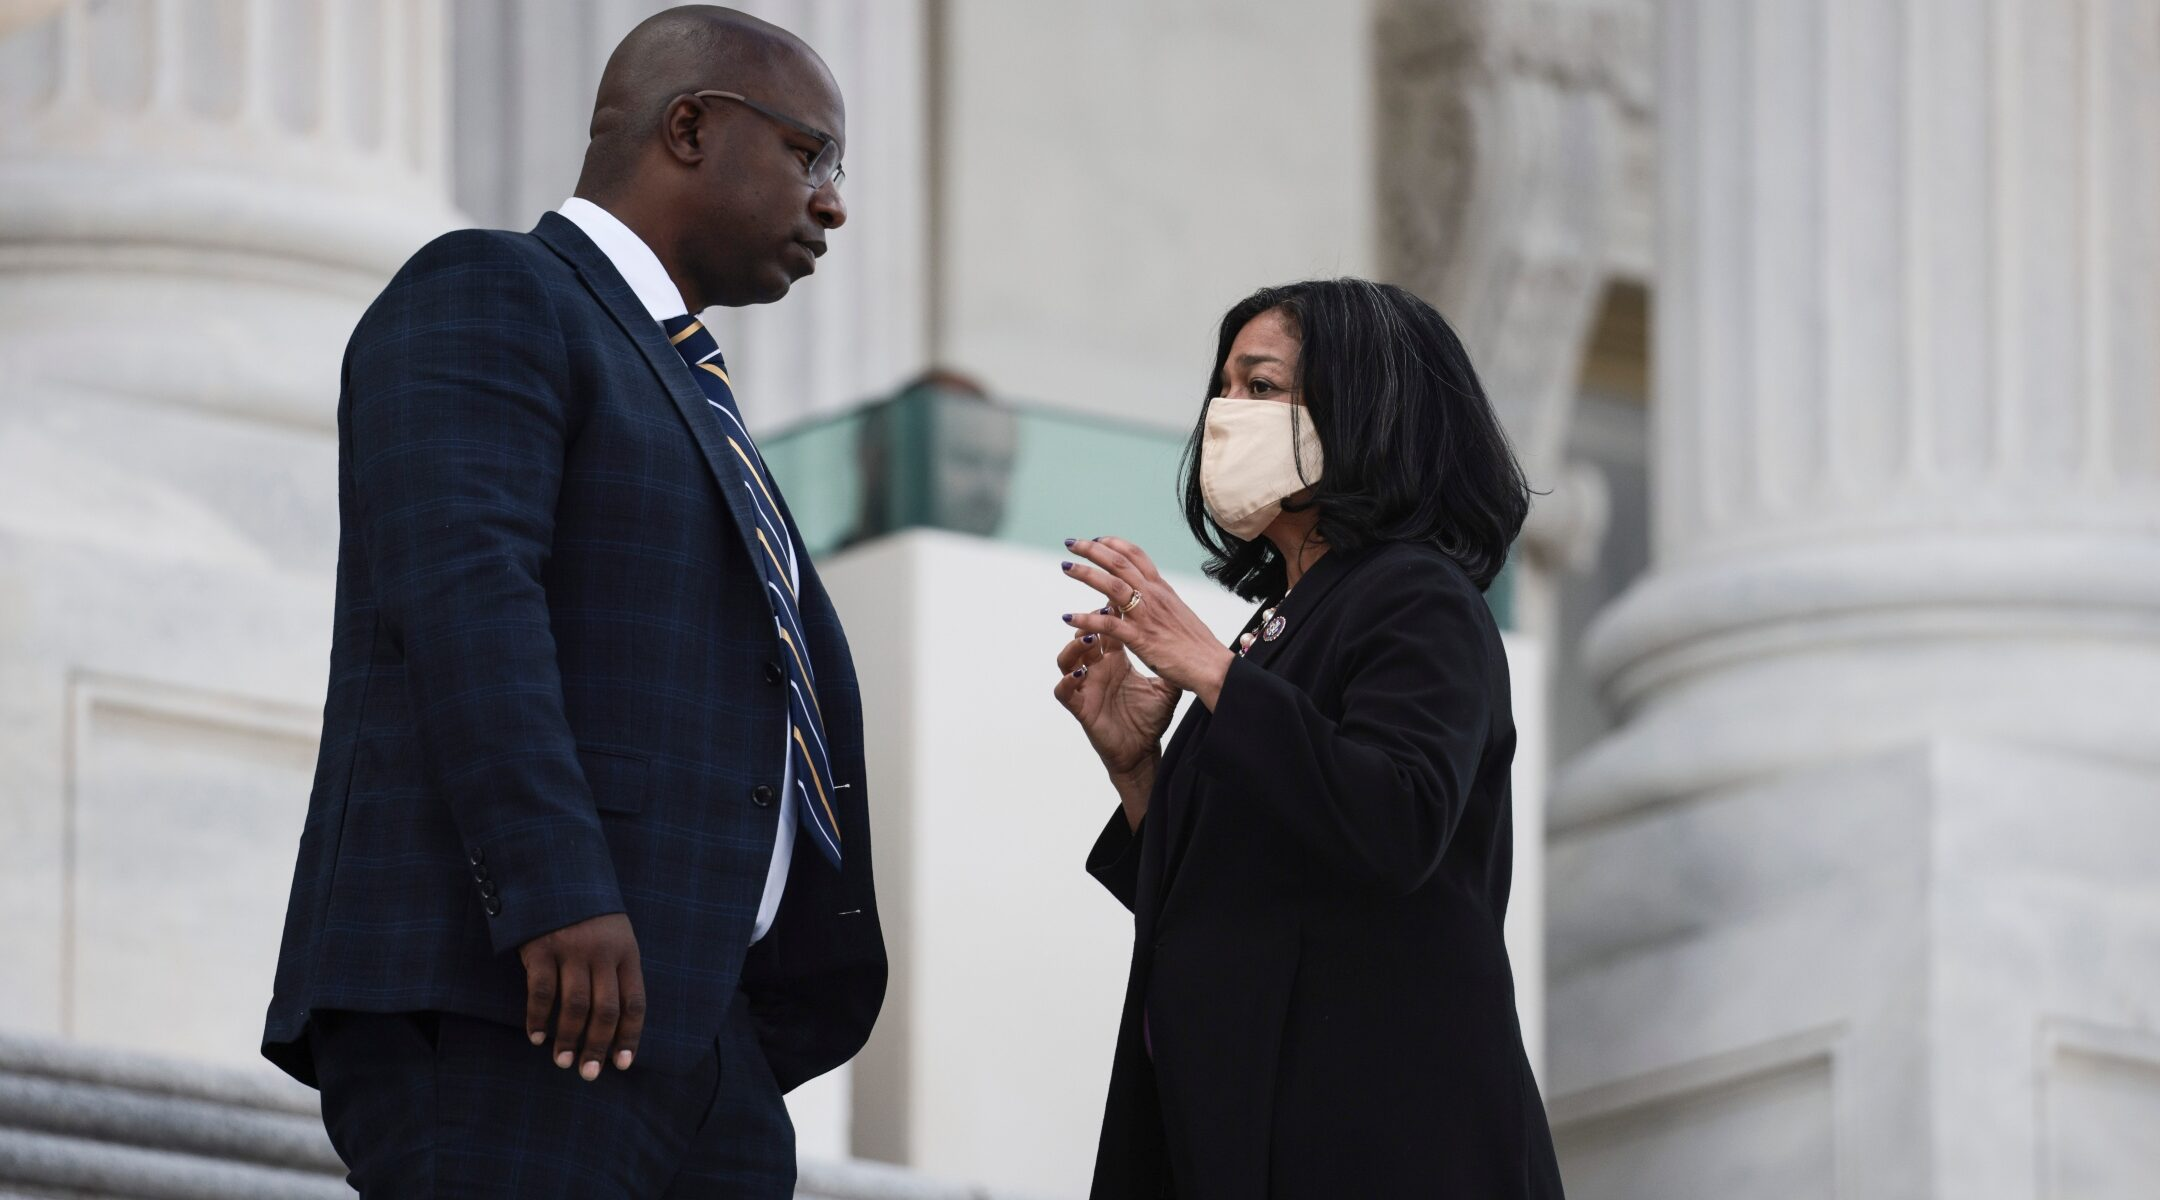 Reps. Jamaal Bowman and Pramila Jayapal speak on the steps to the U.S. Capitol, Sept. 23, 2021. (Photo/JTA-Anna Moneymaker-Getty Images)